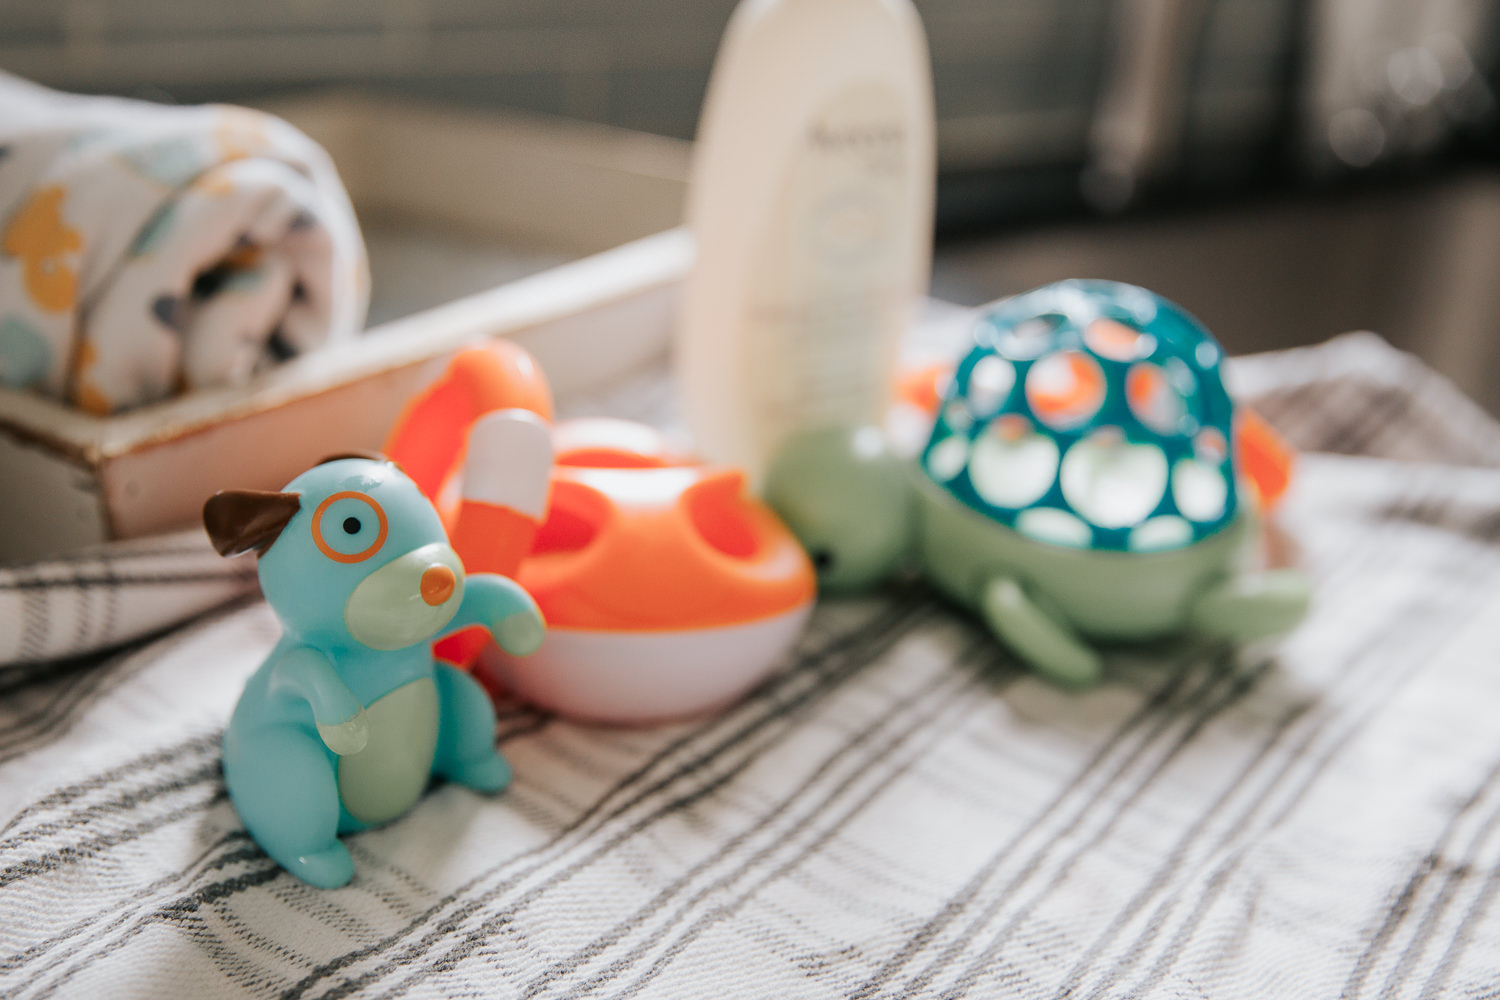 rubber bath toys sitting on towel on kitchen counter - GTA In-Home Photography